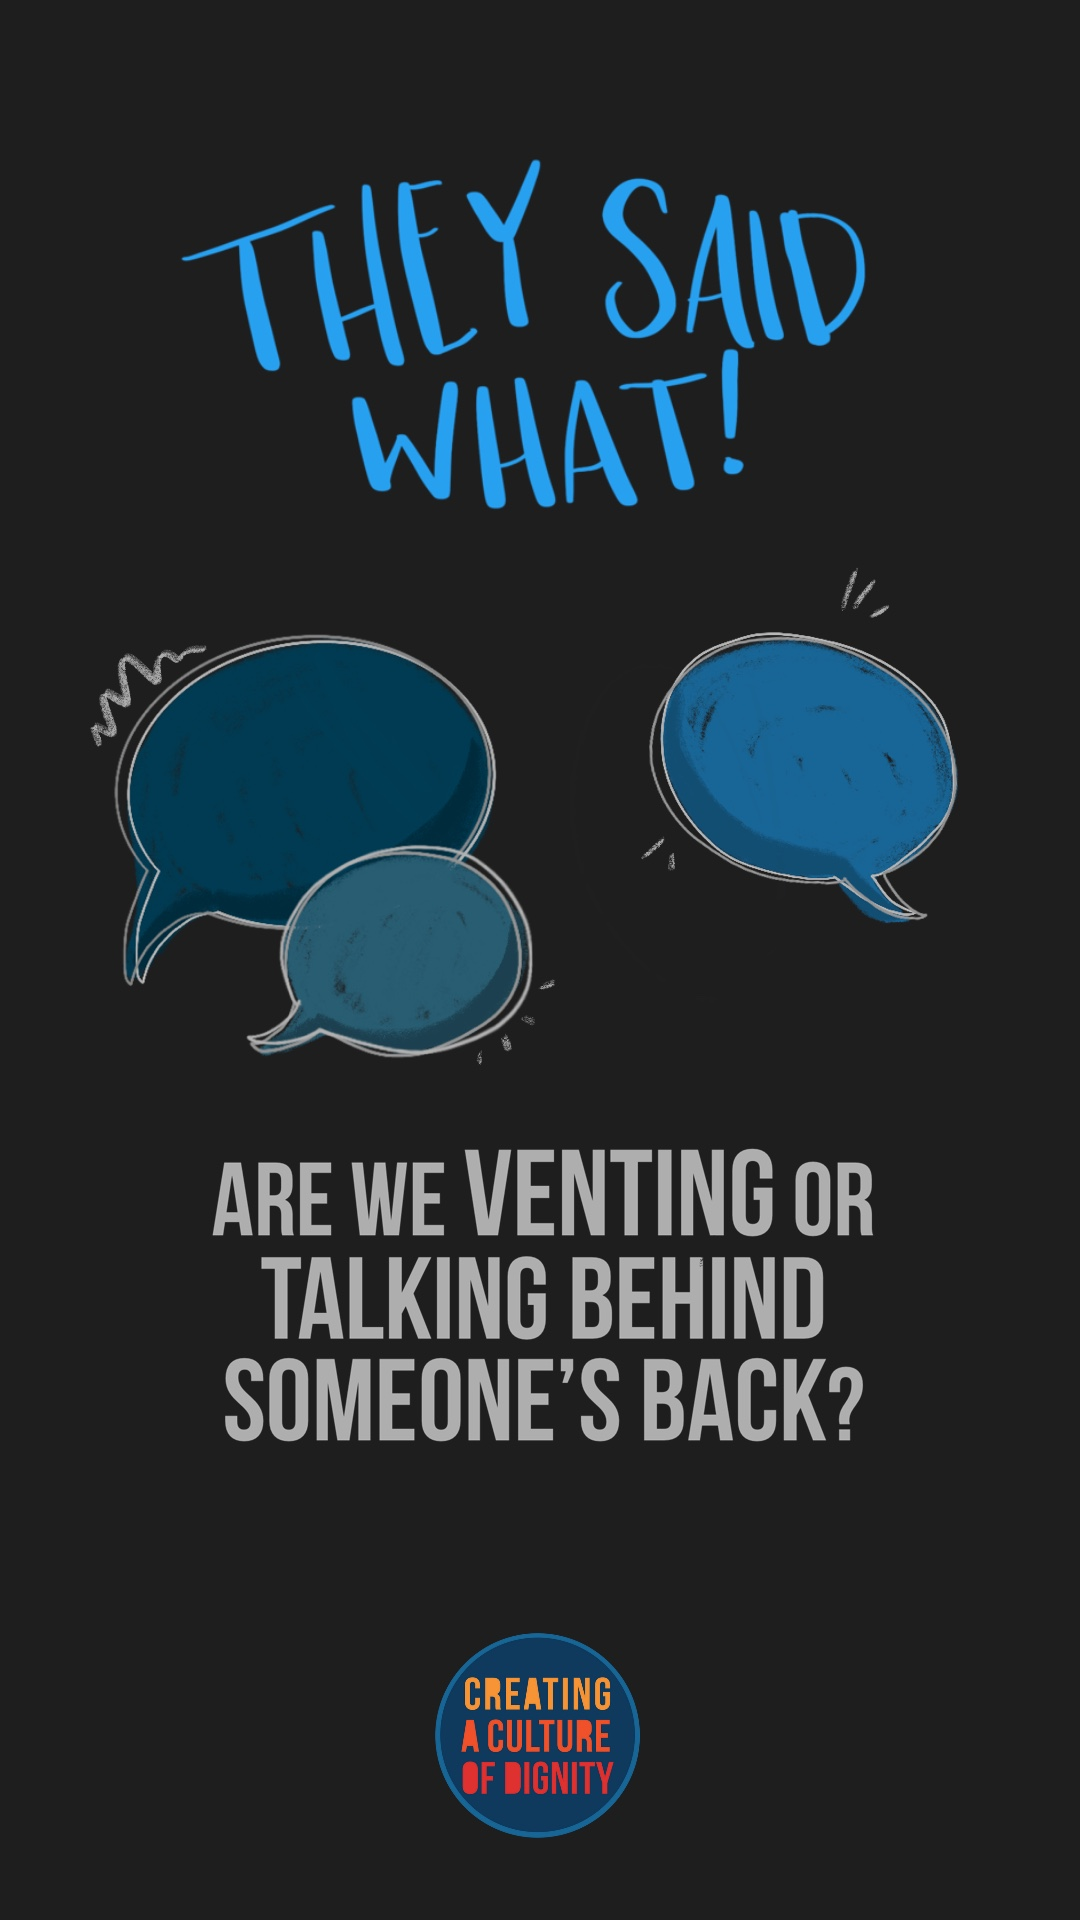 They Said What! Are we venting or talking behind someone's back?